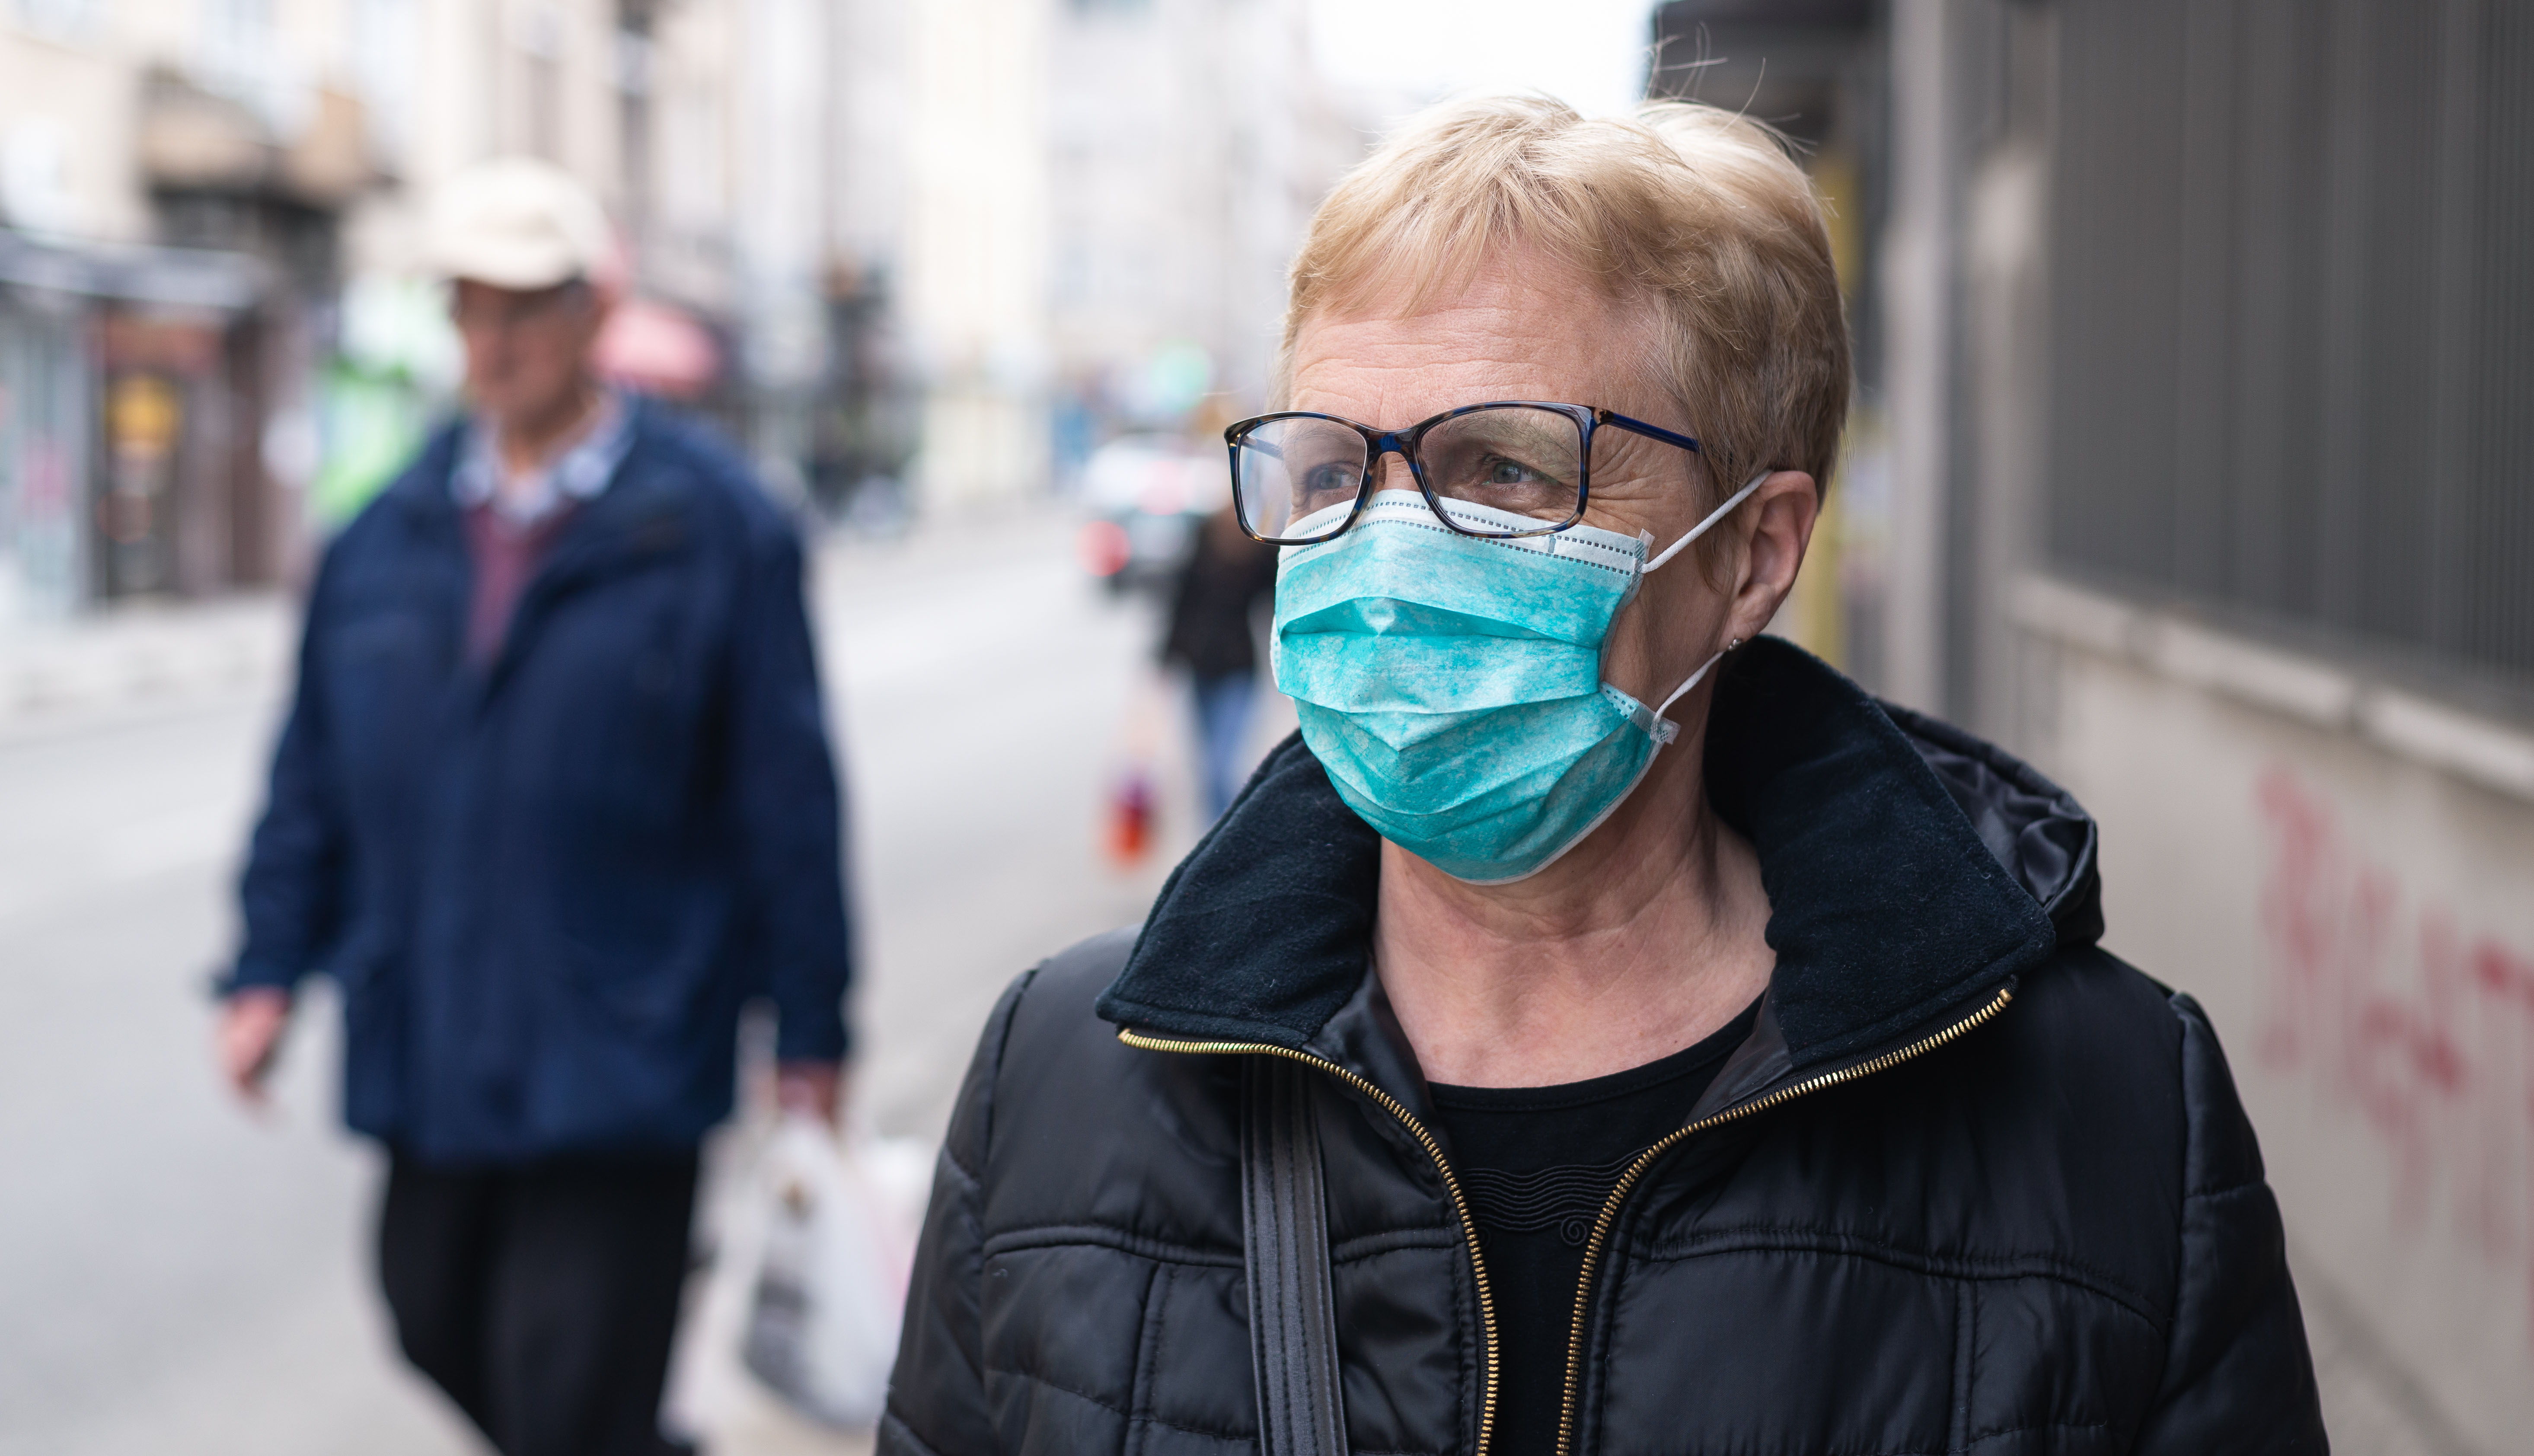 woman on the street wearing mask looking wary of other pedestrians